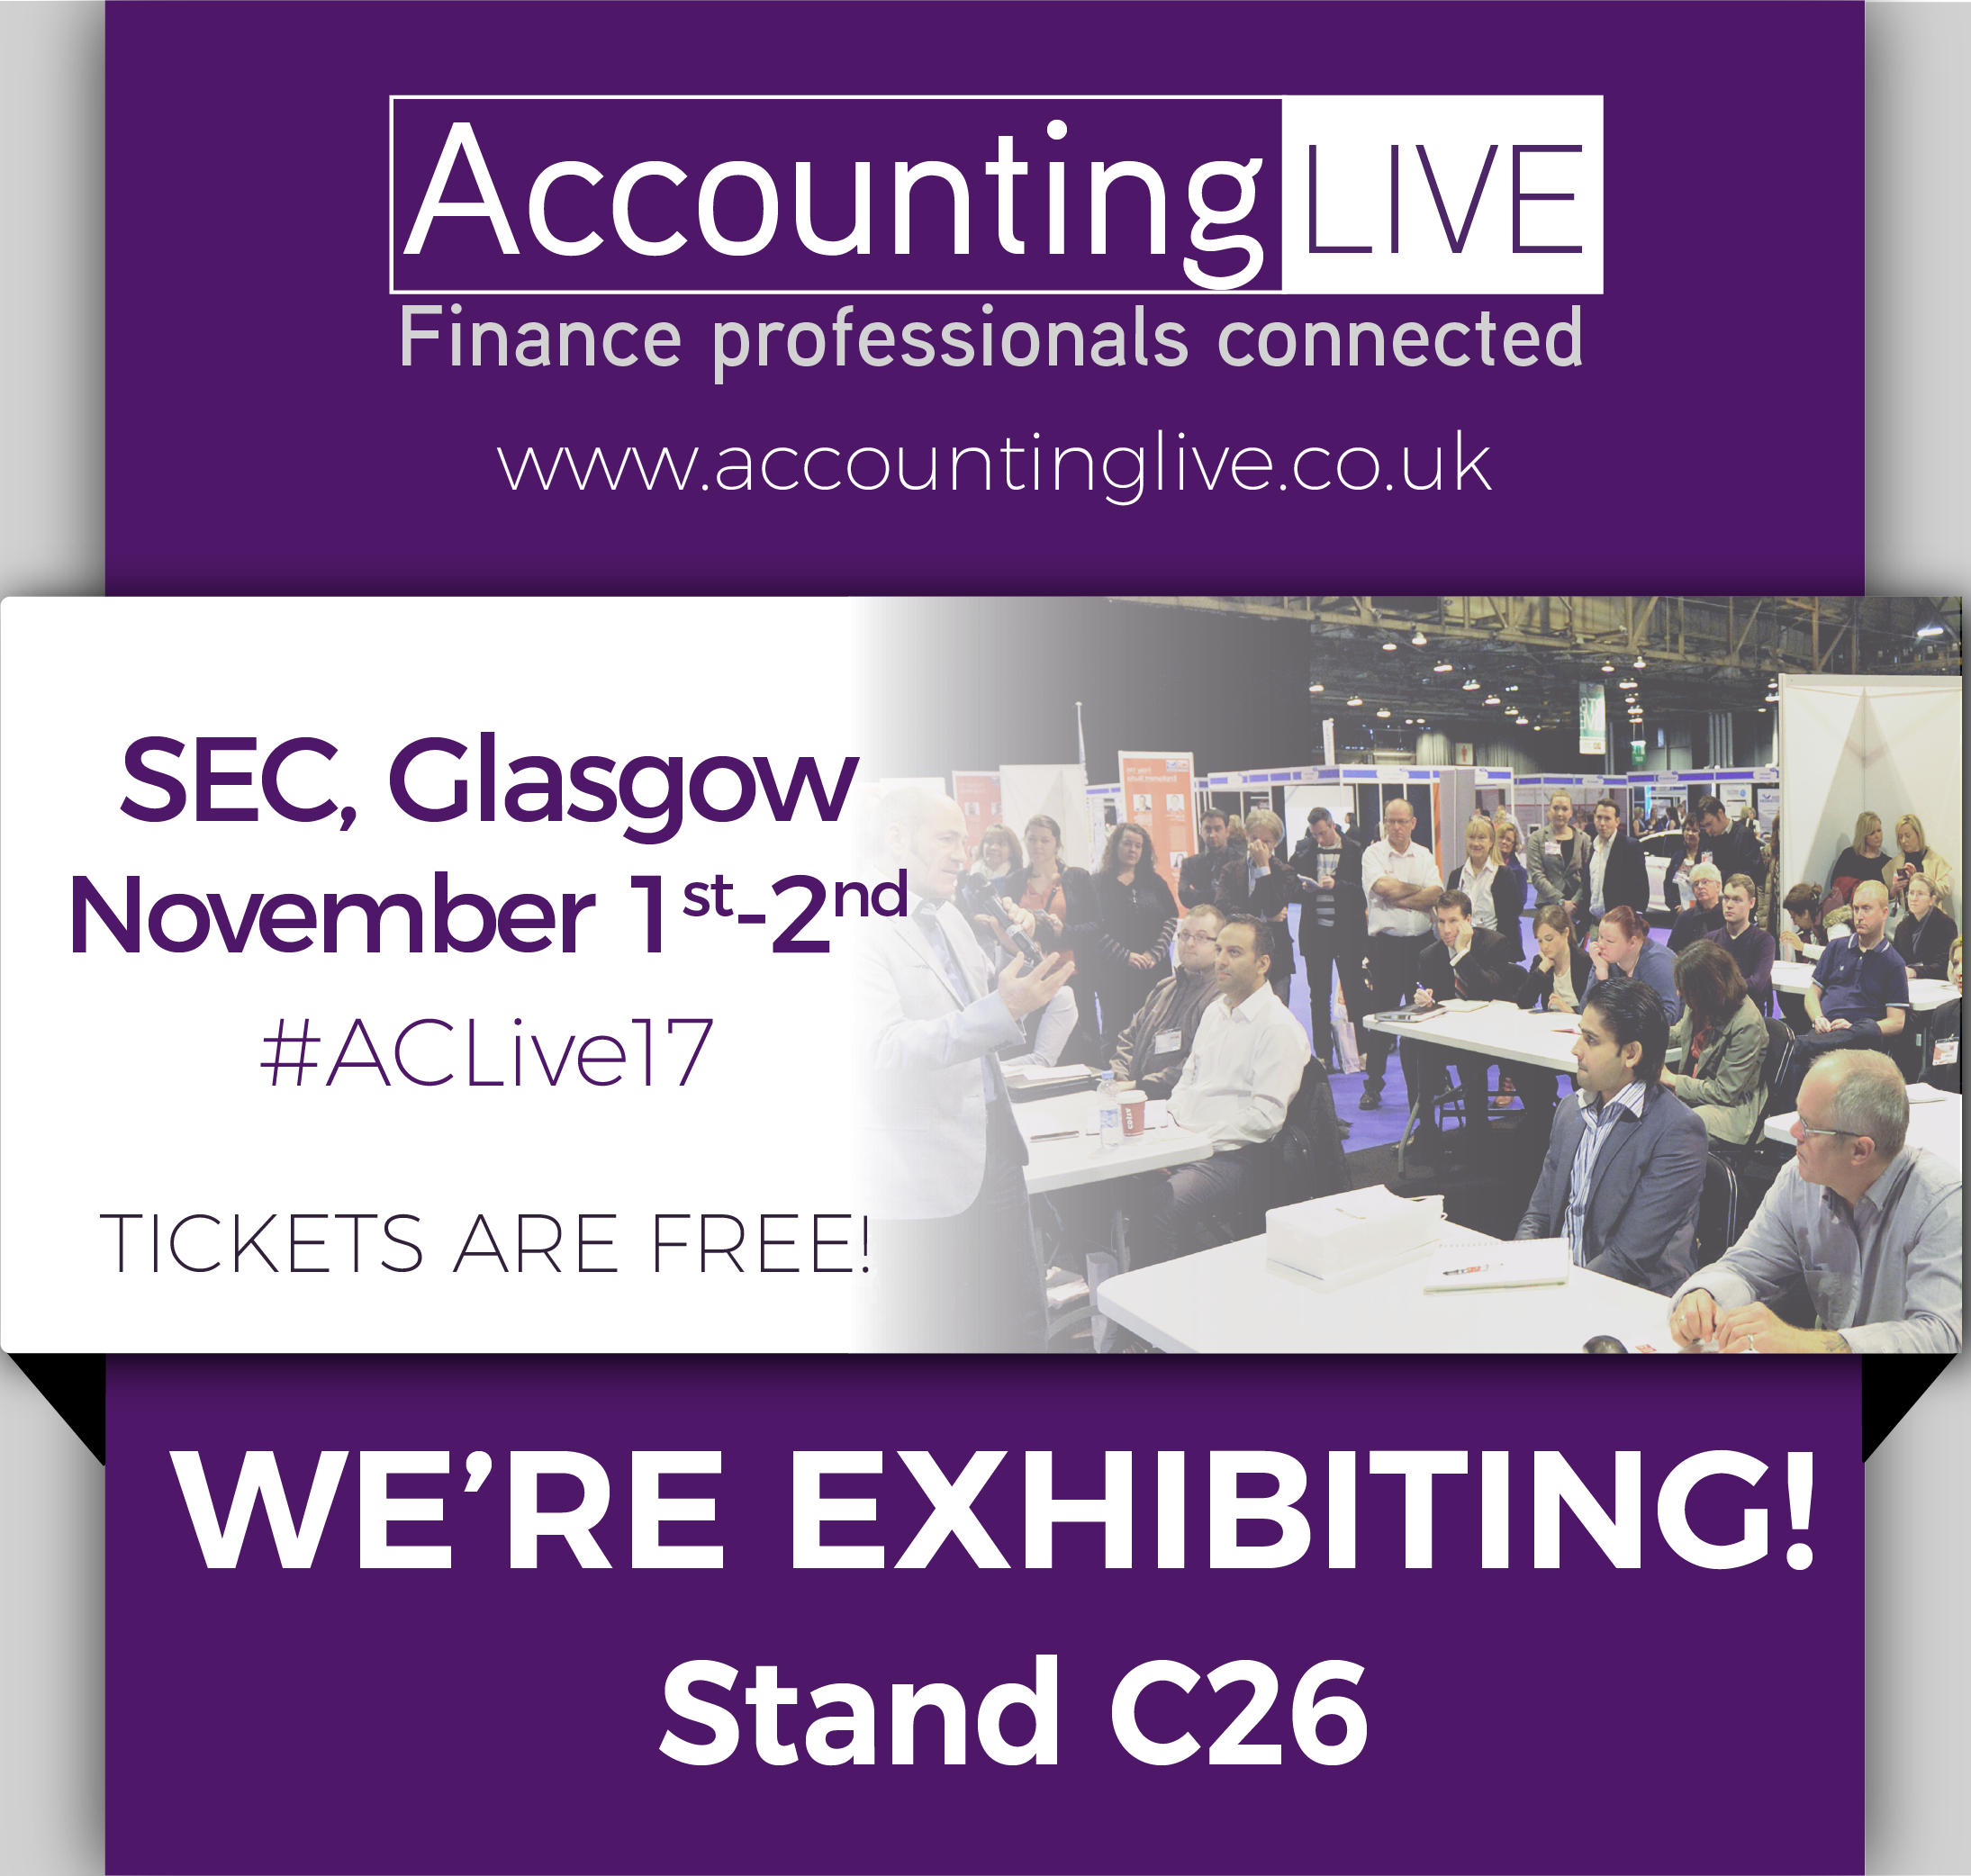 Come and see us at Accounting Live in November!